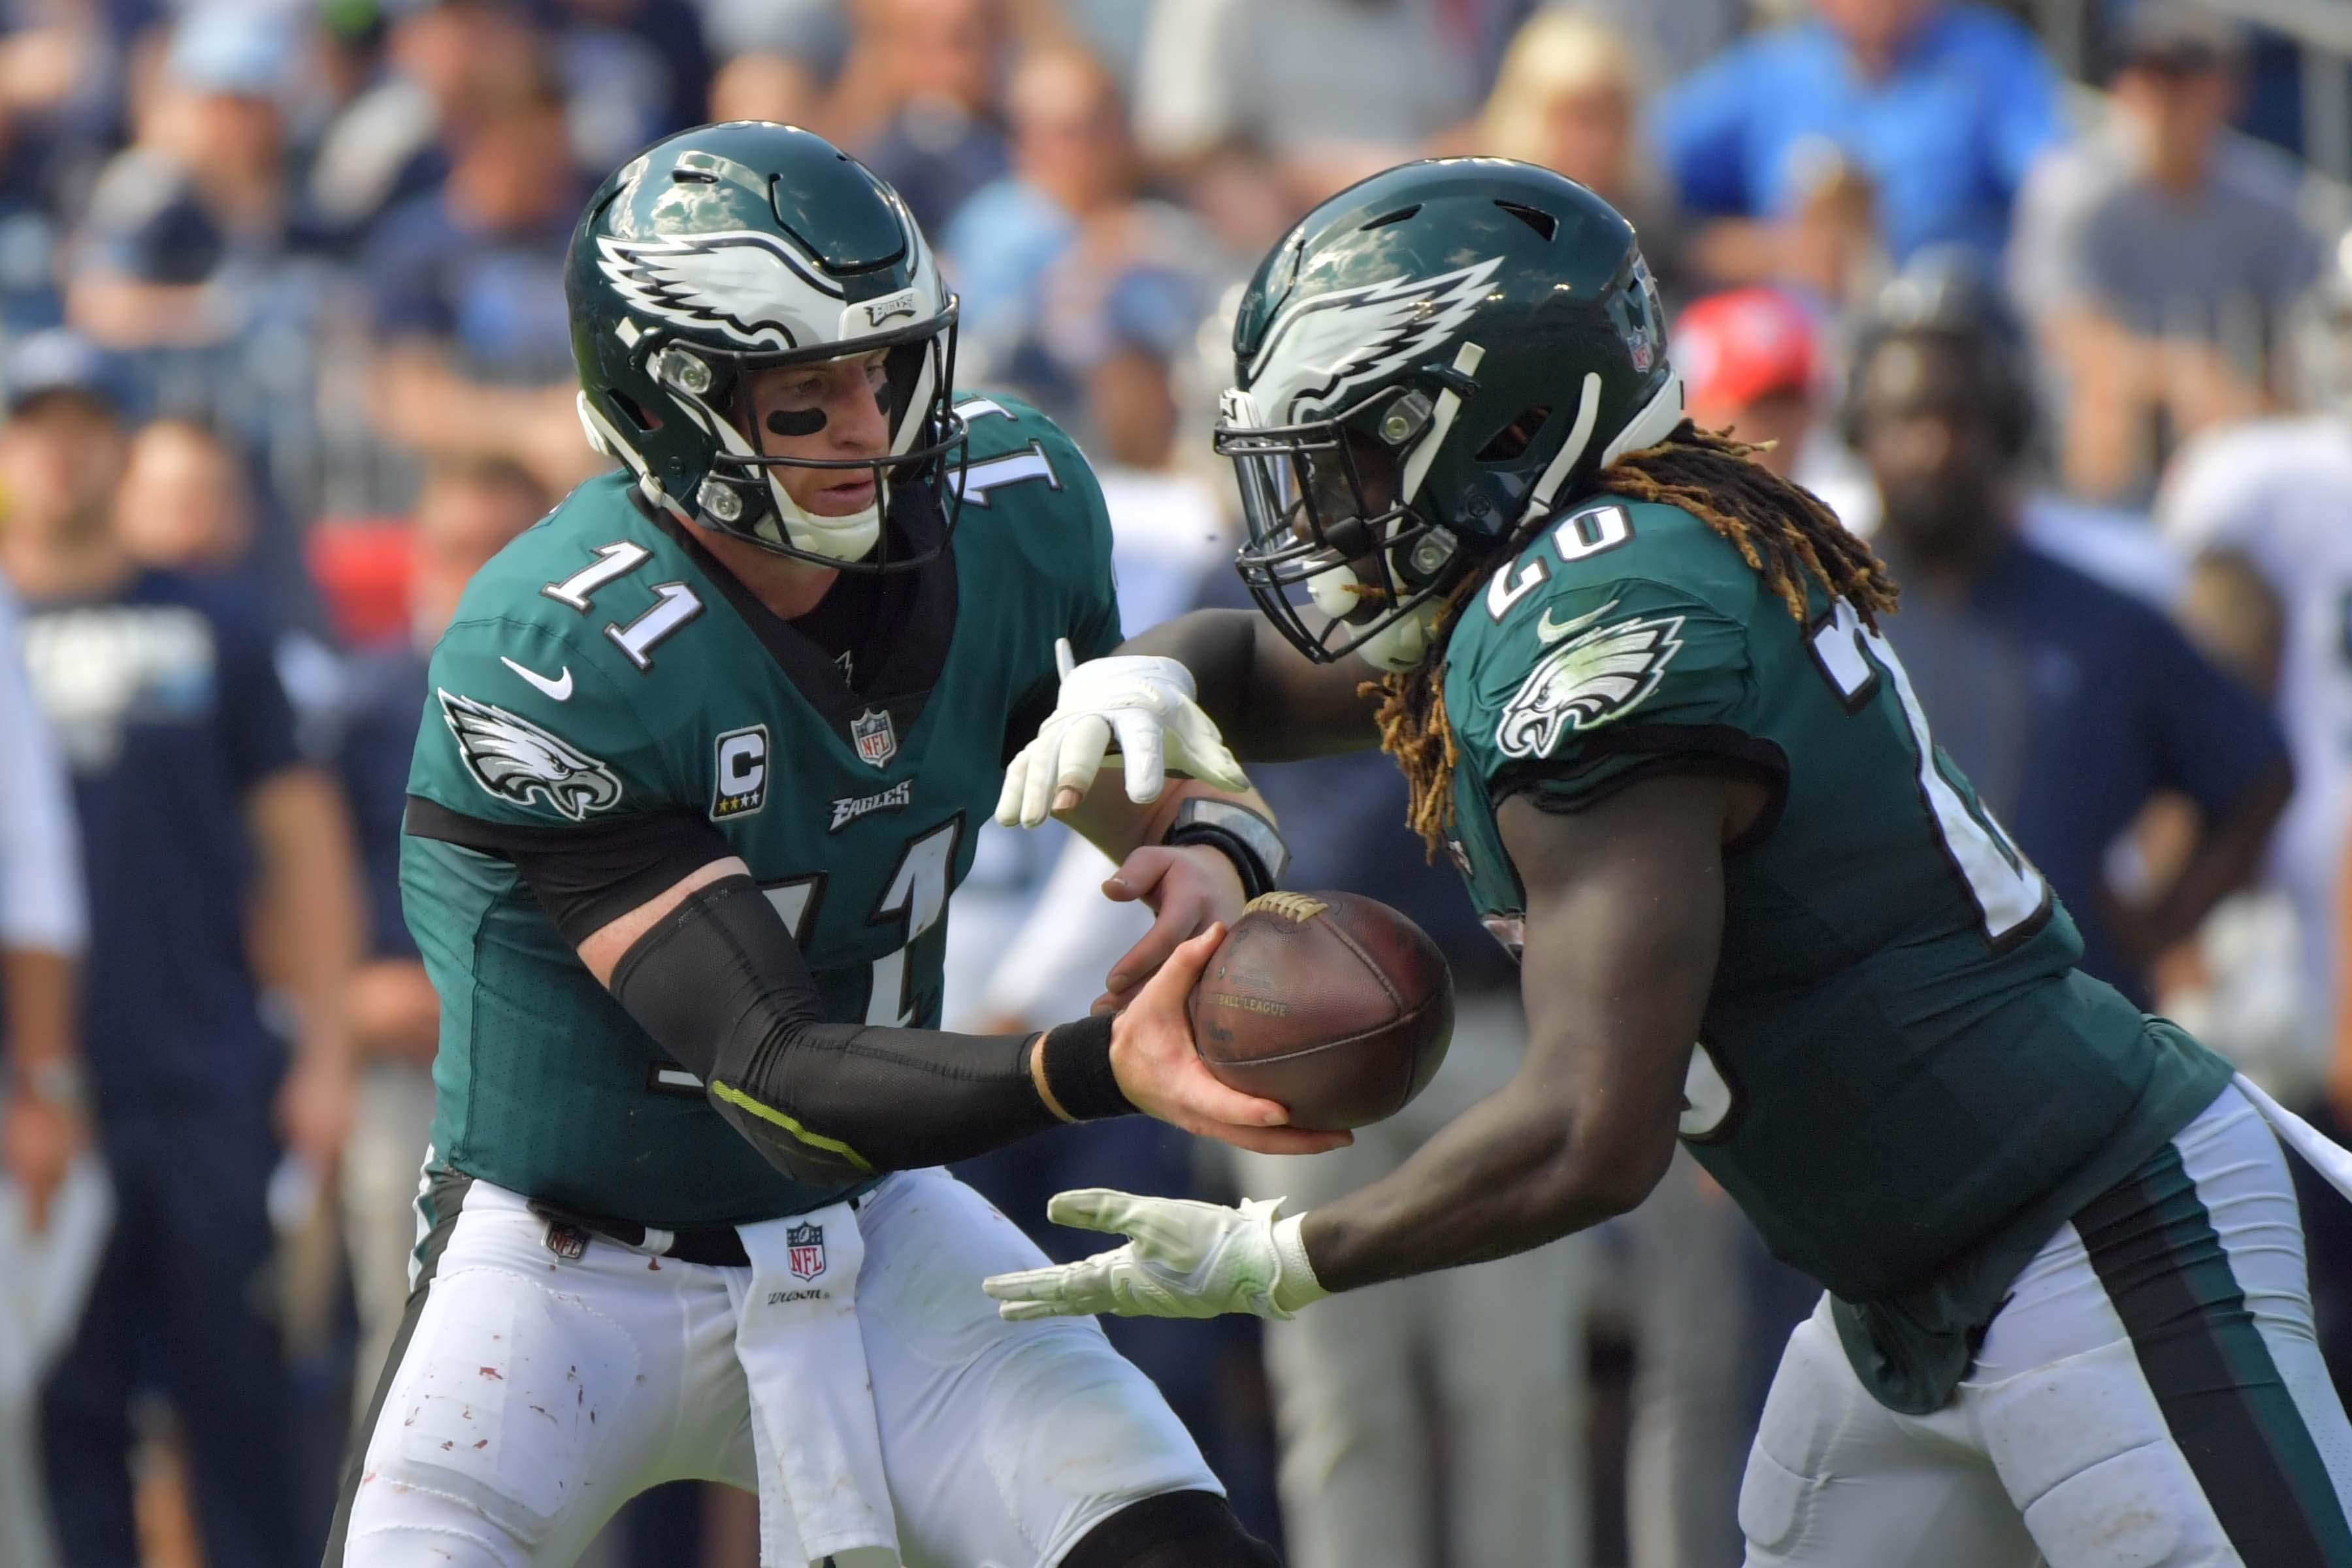 Ajayi and quarterback Carson Wentz could not fire the Eagles past the resolute Titans